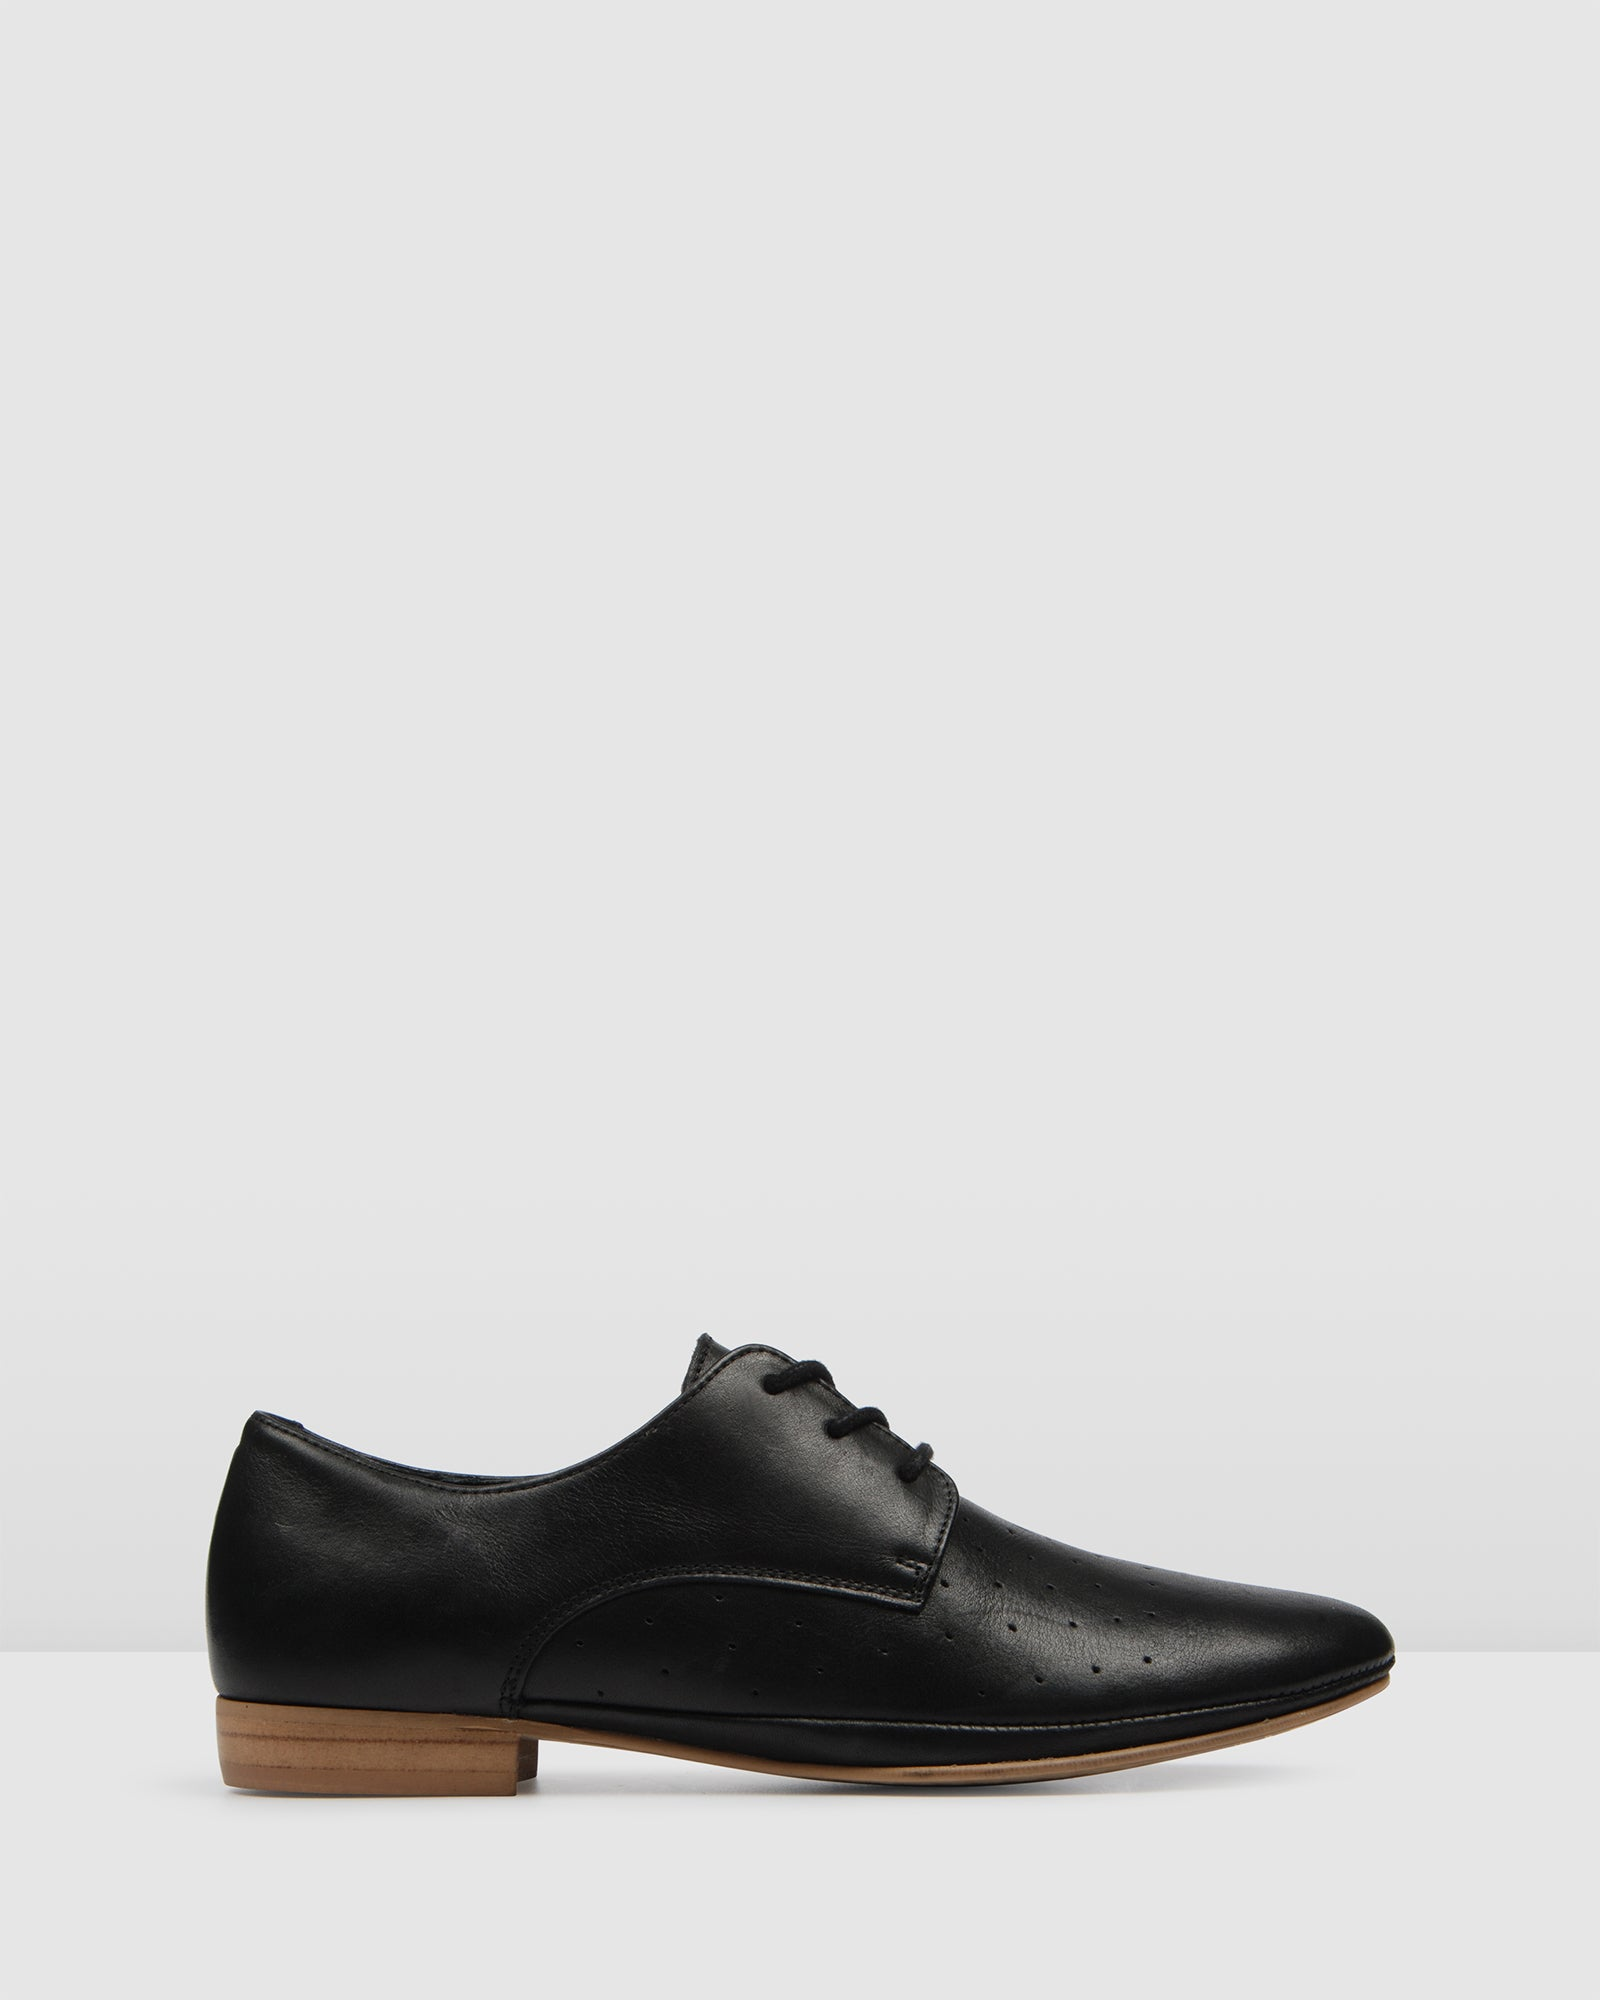 MUTINY LACE UPS BLACK LEATHER